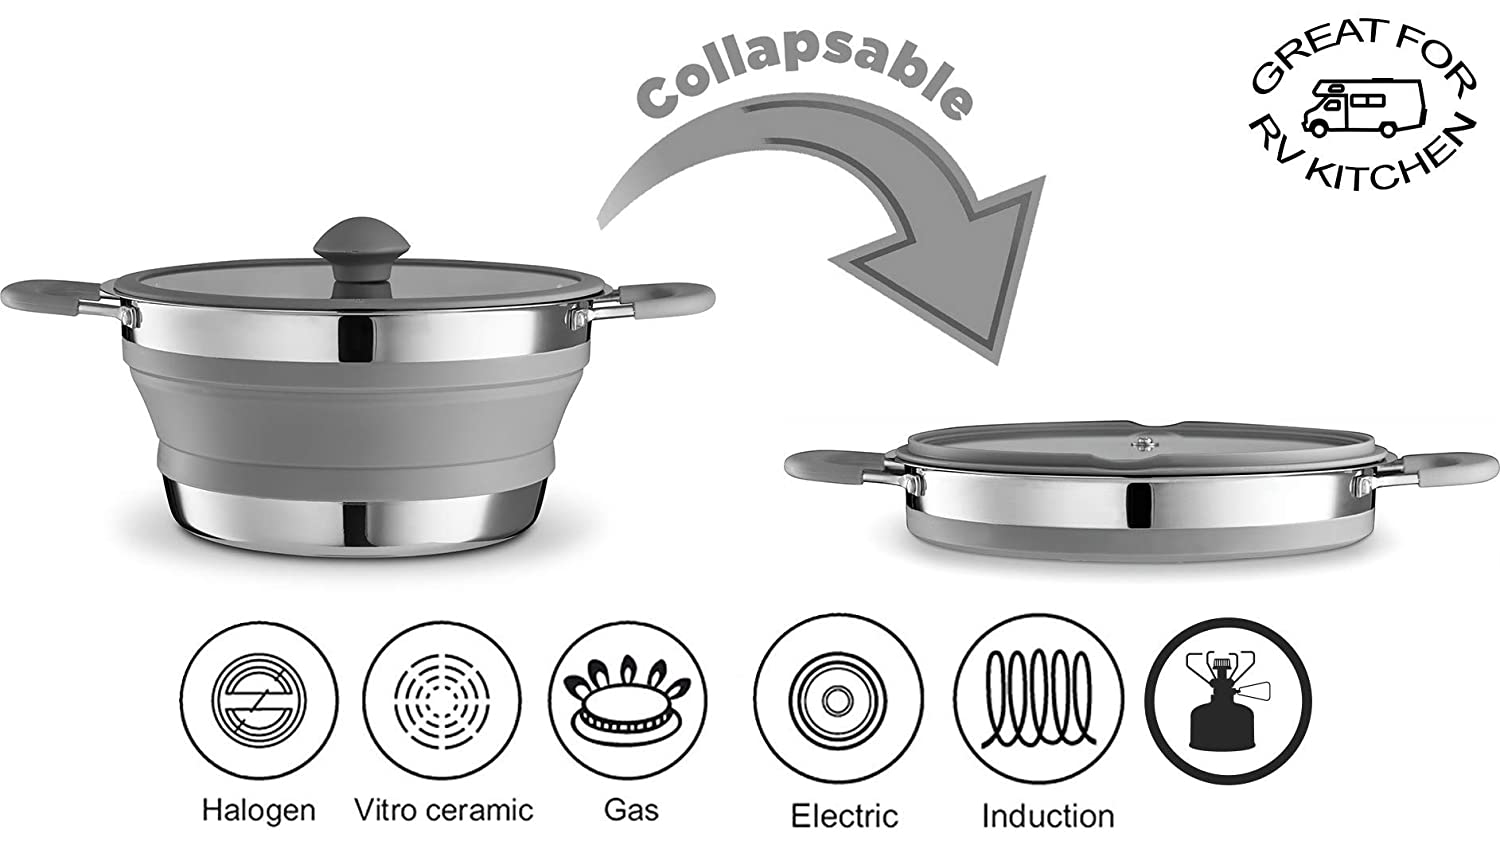 Gourmia Outdoors, GCP9940 3qt Collapsible Pot – Hiking, Stainless Steel, Silicone and and Glass Lid – for Gas and Electric Stove Cooking – Great for RV, Outdoors, Hiking, Camping, Traveling - BPA Free [並行輸入品] B07R3Y4545, 葡萄畑 ココス:eb600643 --- anime-portal.club